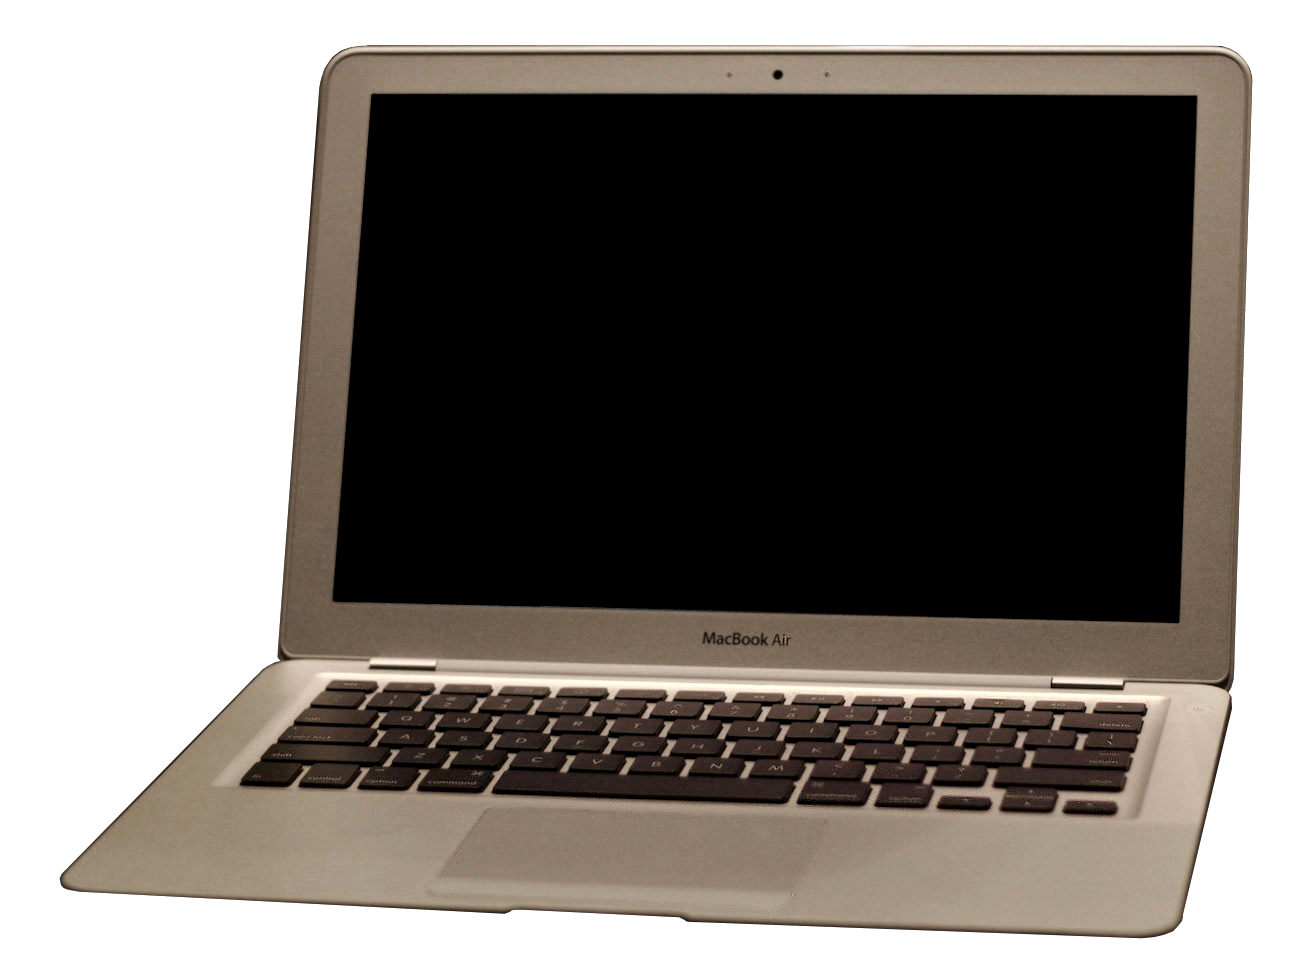 File black wikimedia commons. Macbook air transparent png image library download